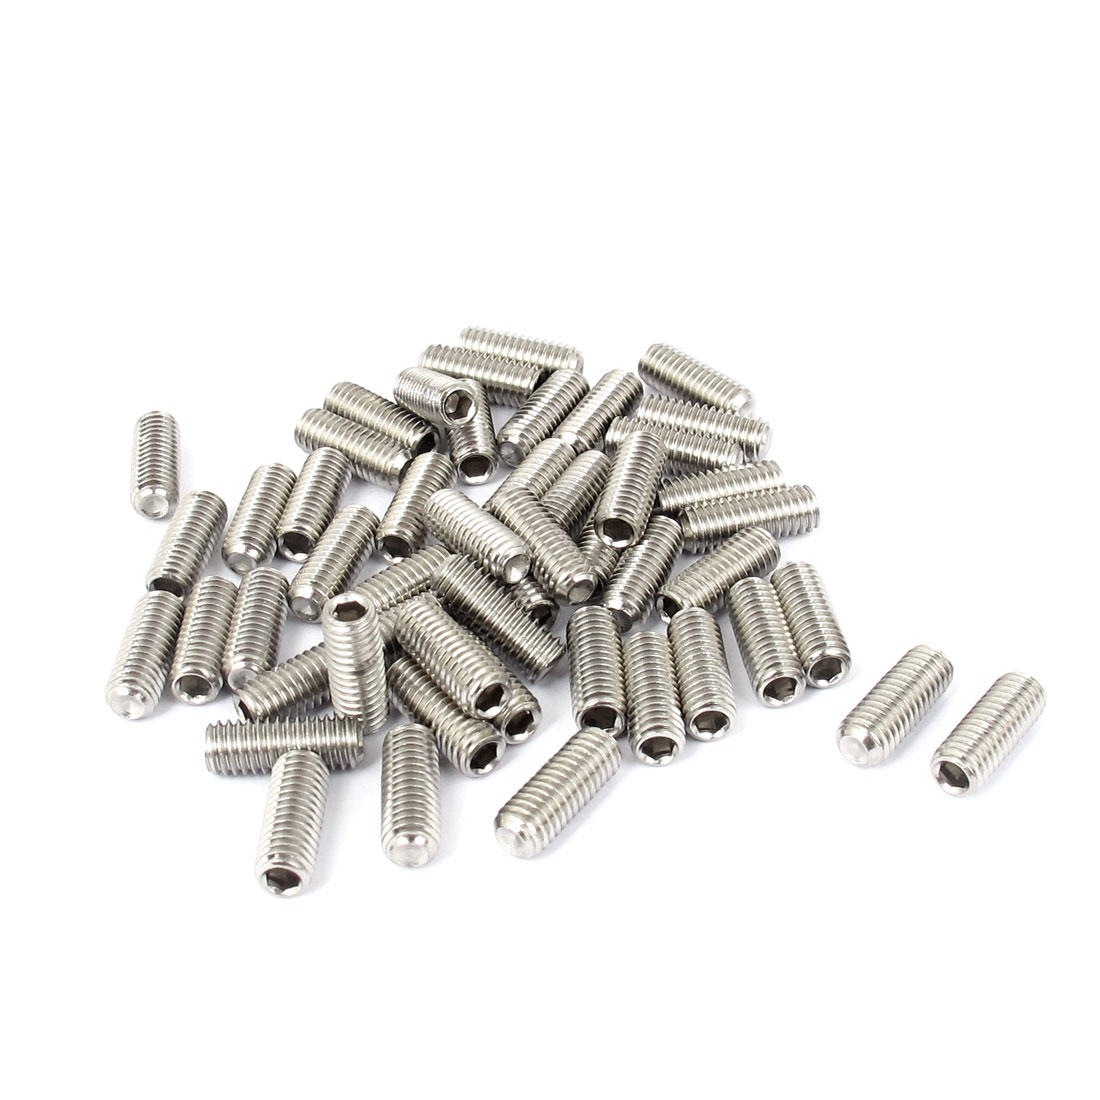 M6x16mm Stainless Steel Hex Socket Set Cap Point Grub Screws Silver Tone 50pcs